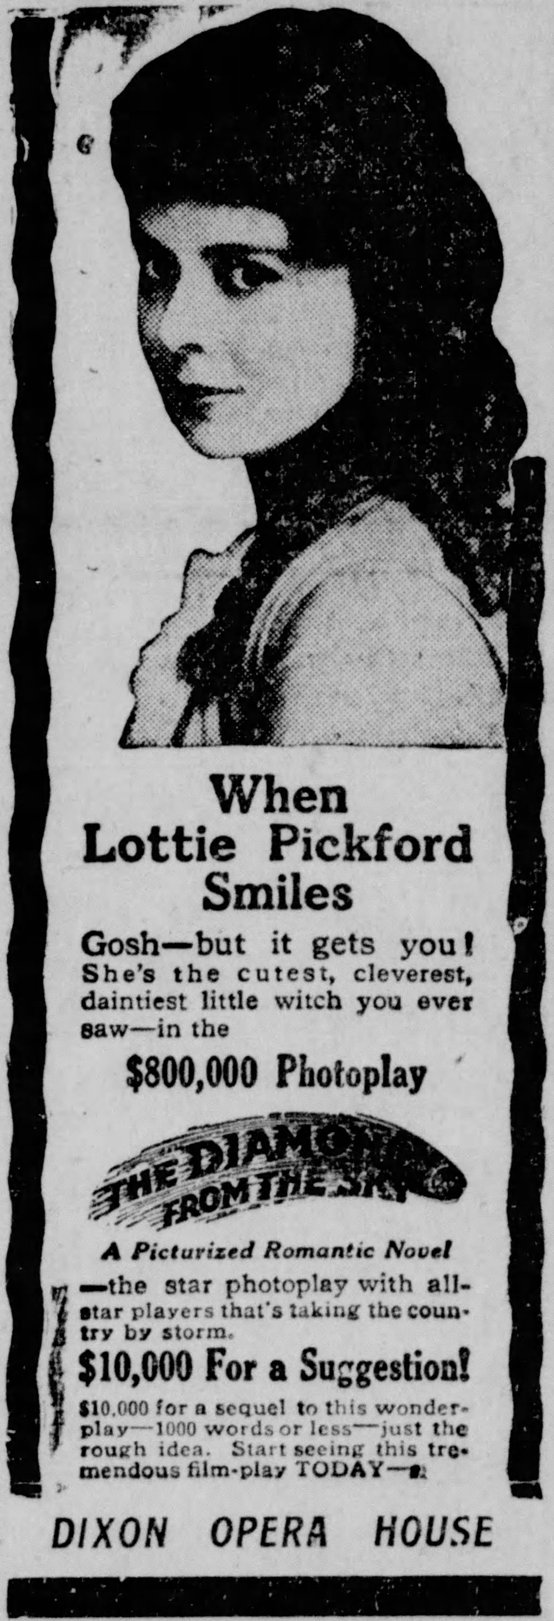 Source: Dixon Evening Telegraph of Dixon, IL, May 27, 1915, page 5.